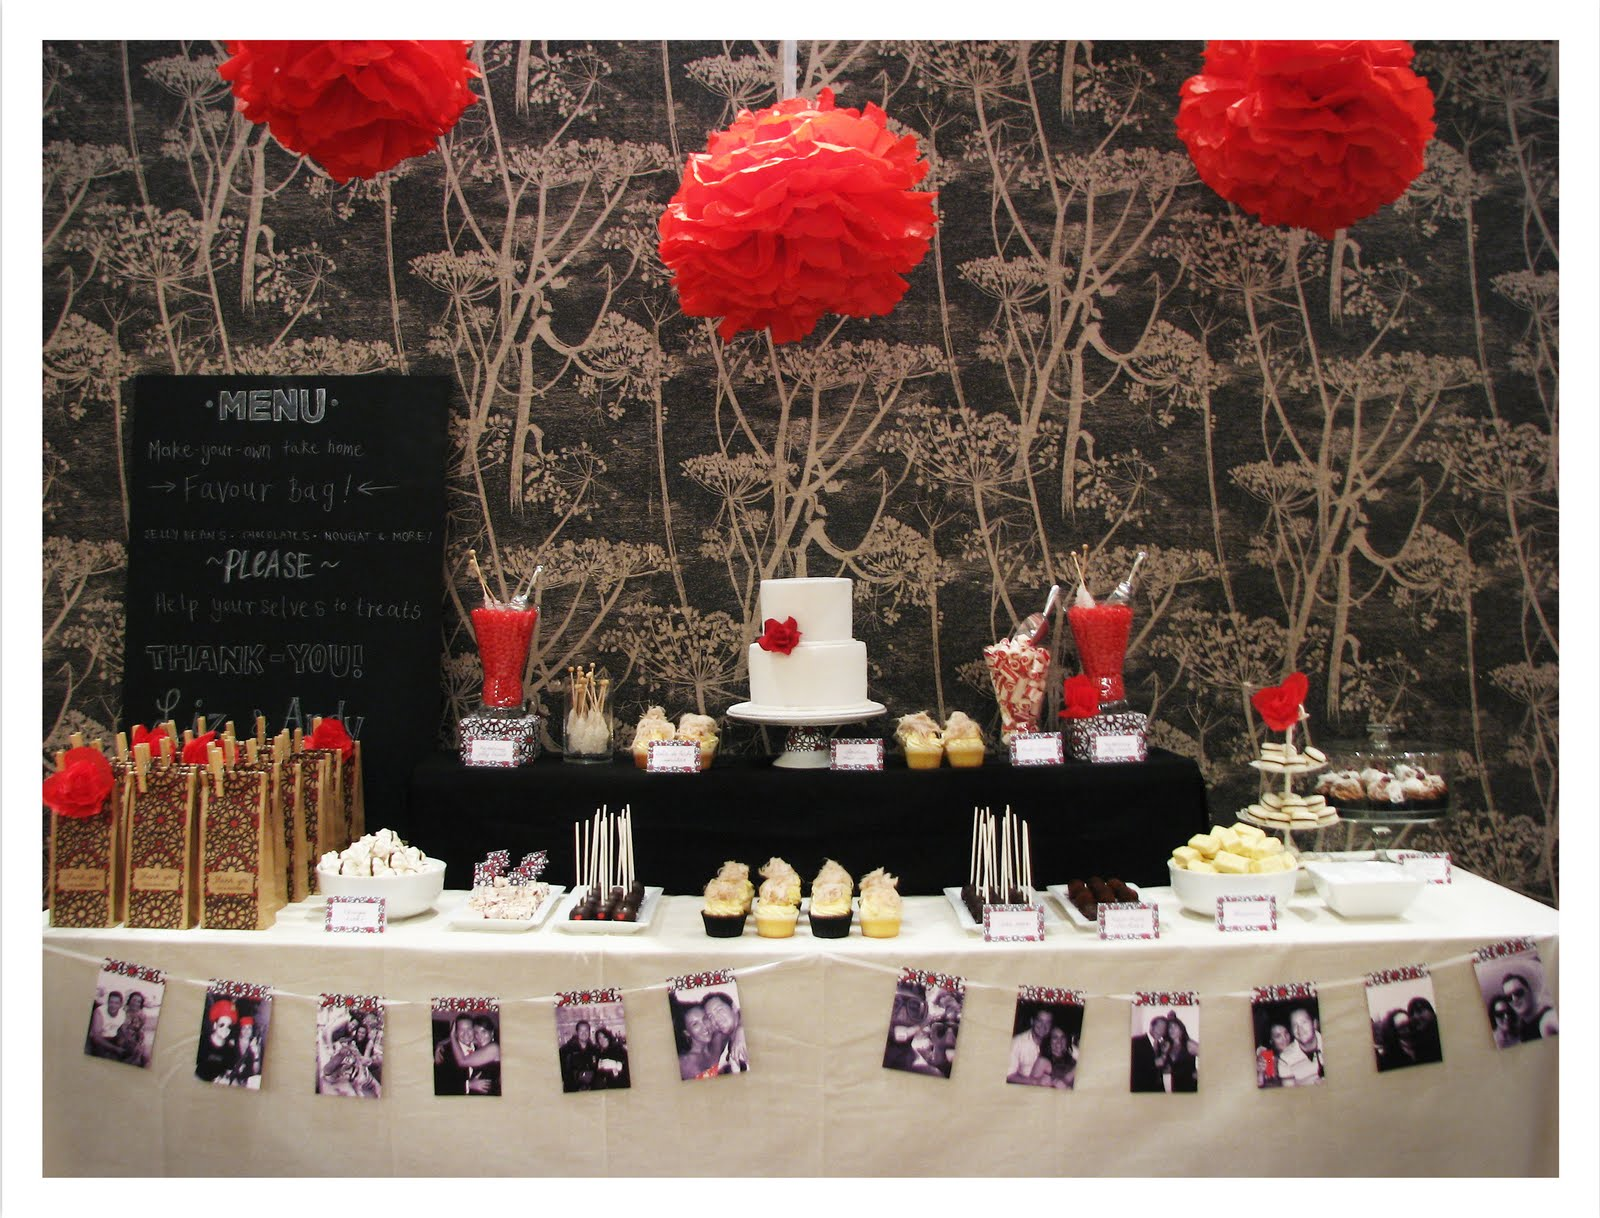 Party With A K...THE BLOG: WEDDING WEEK: Planning An